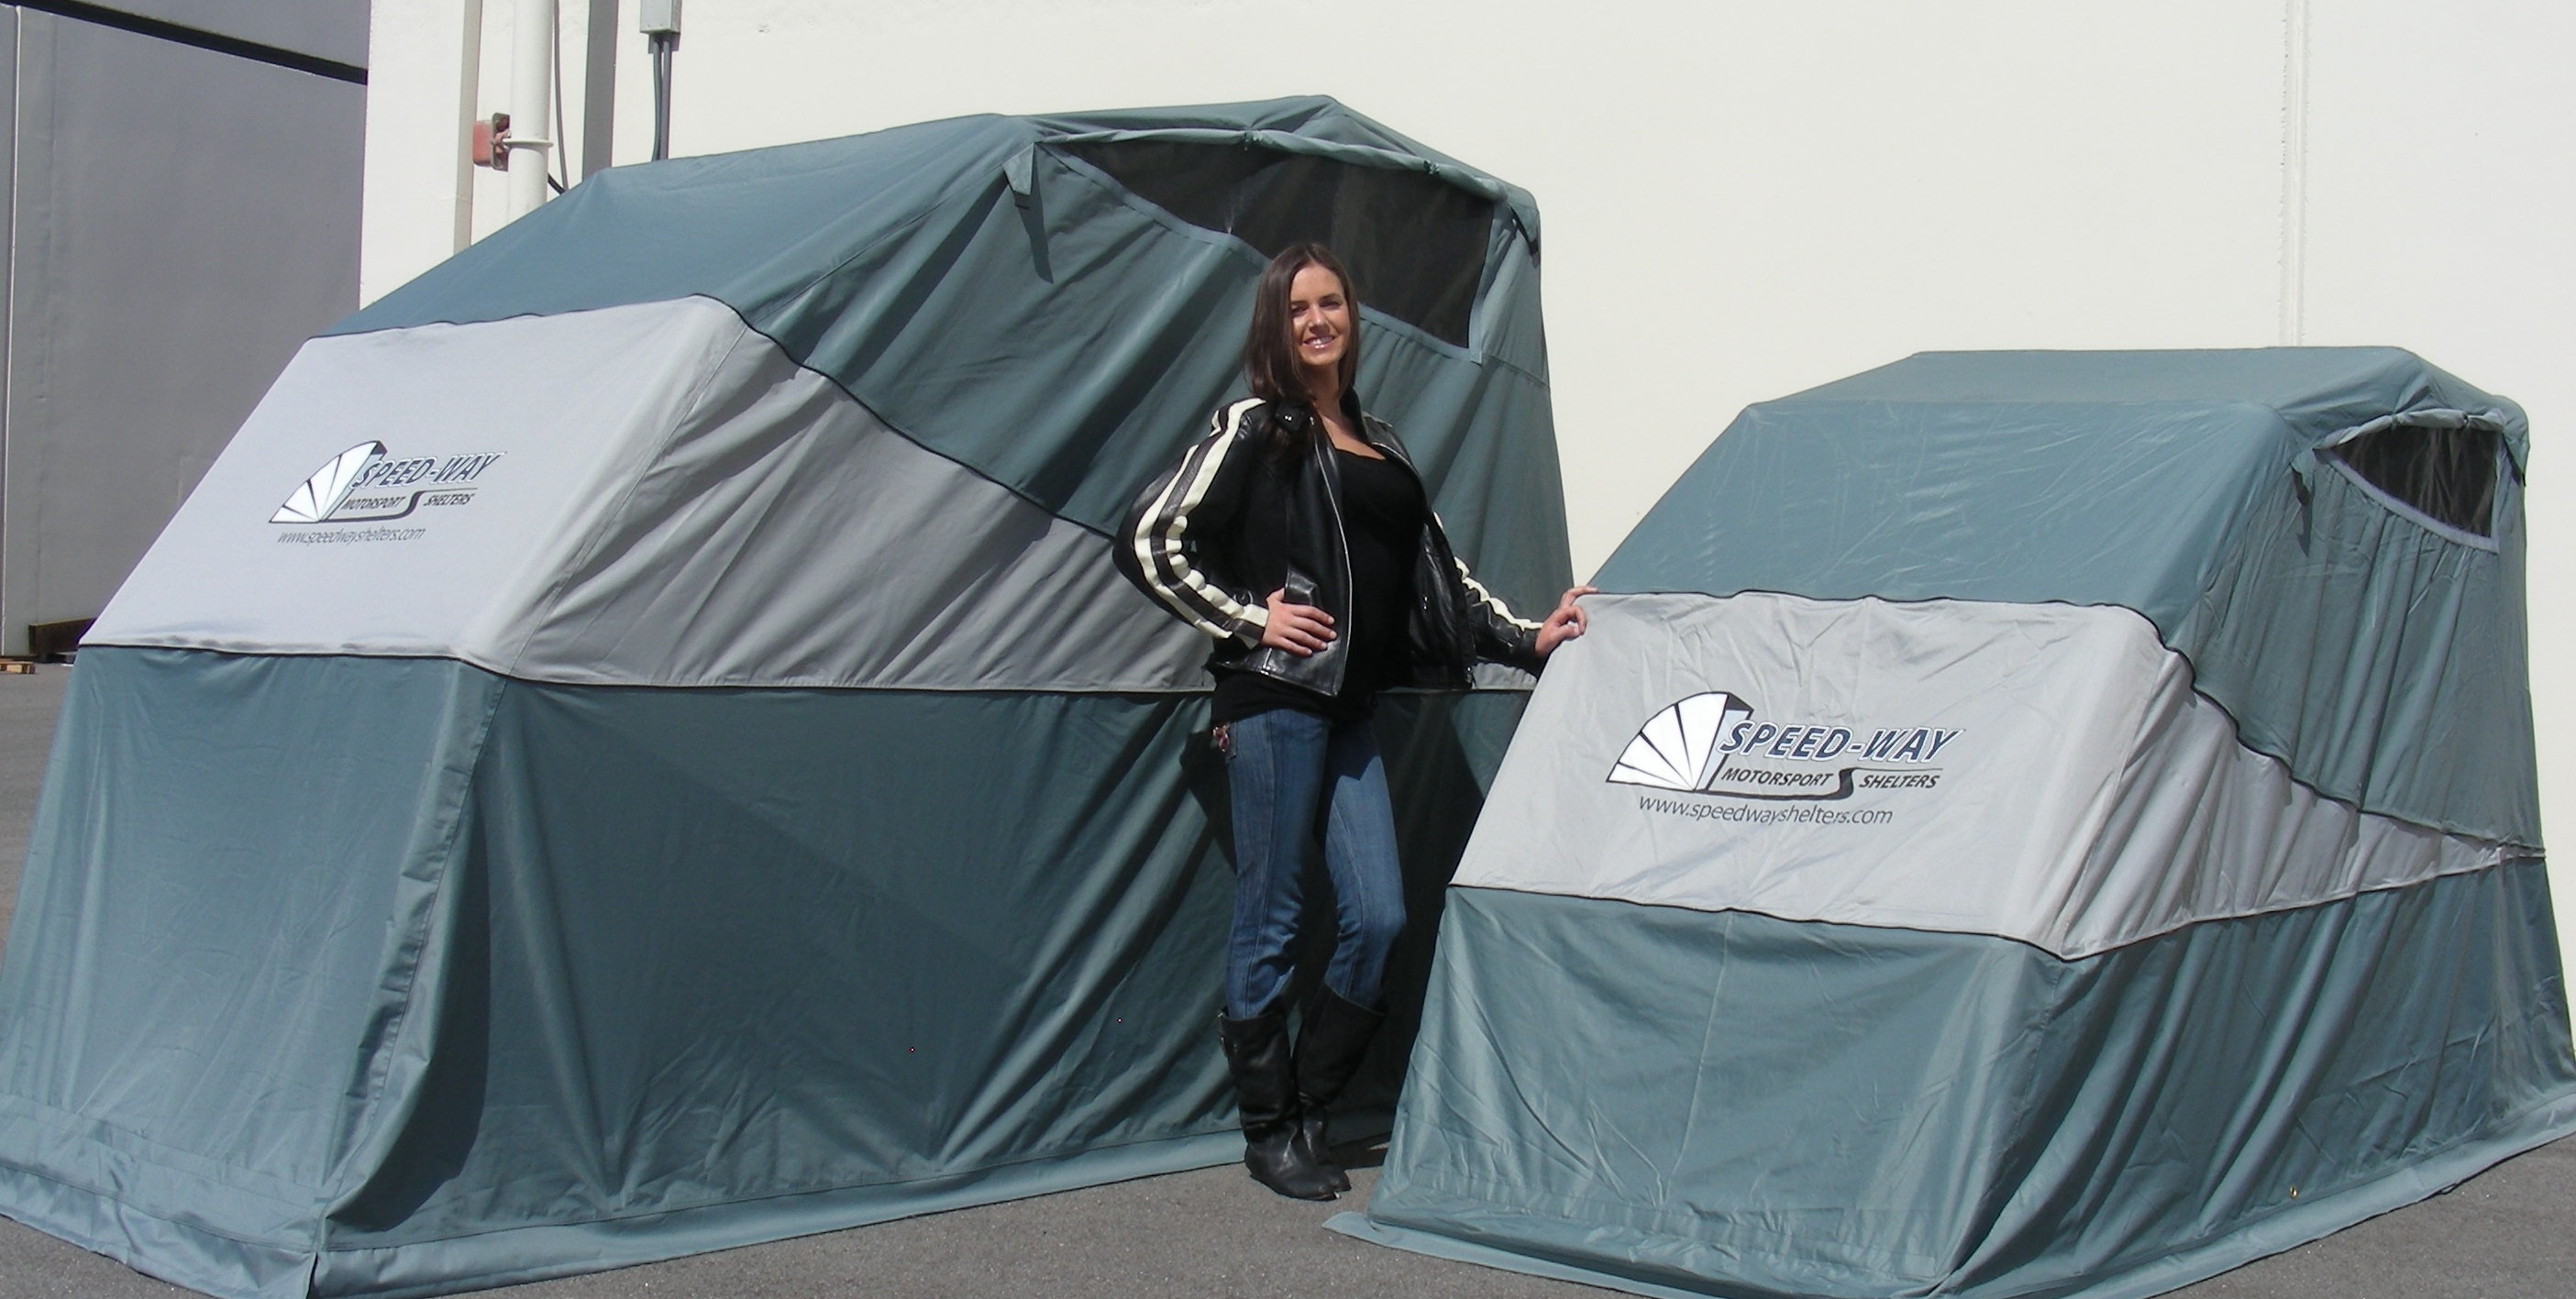 Motorcycle Covers Shelter : Speedway motorcycle cover shelters honda goldwing